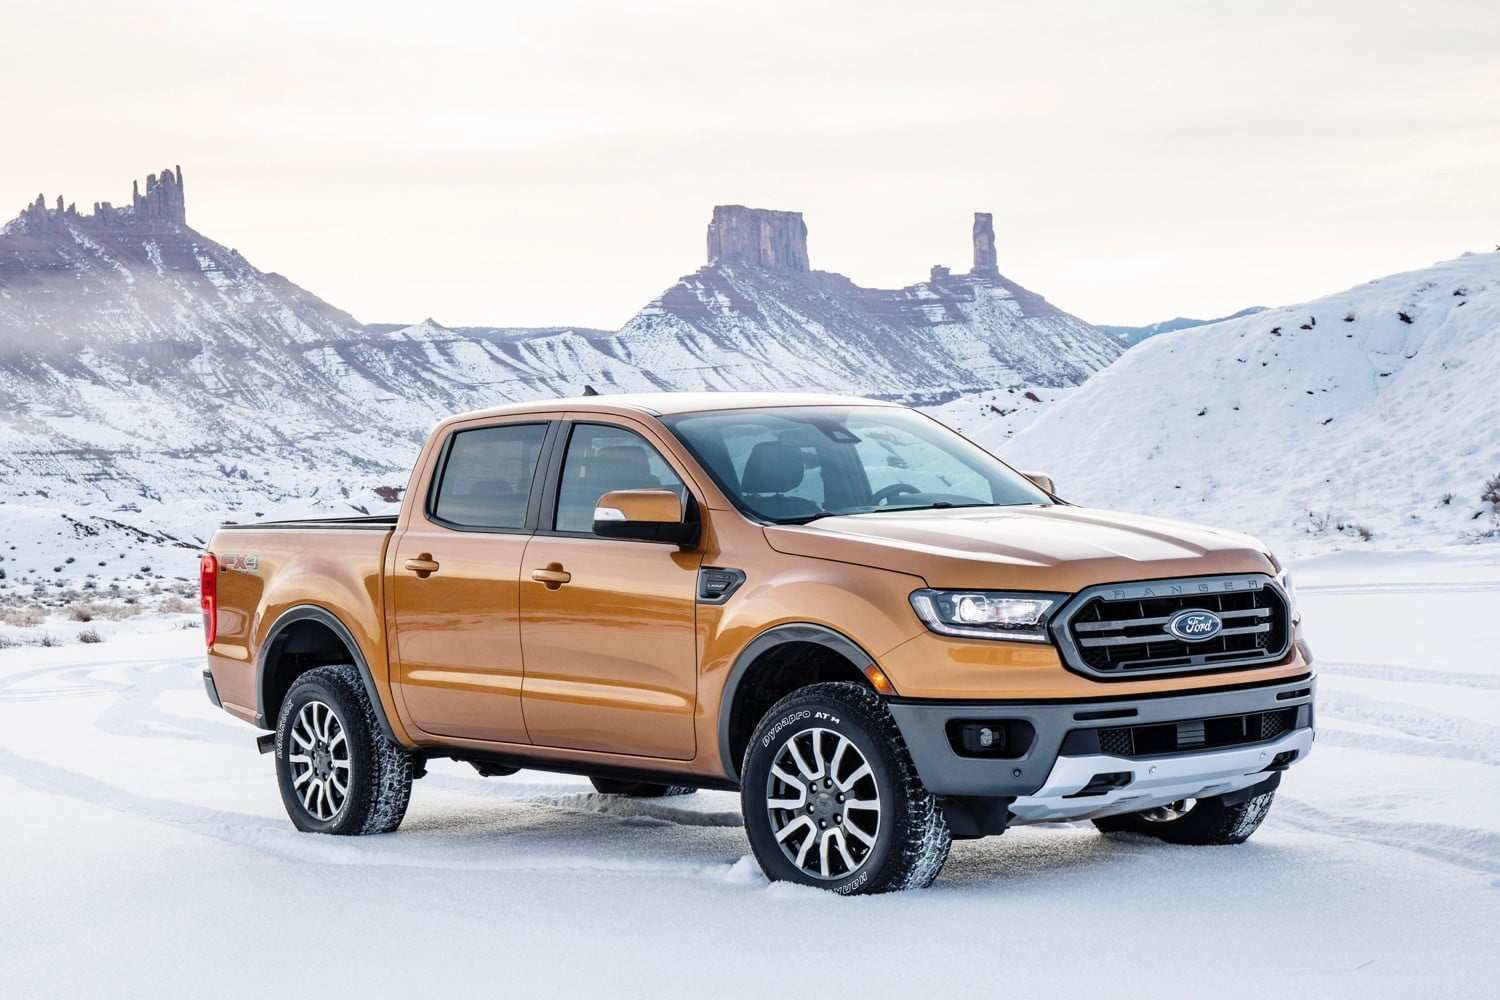 19 Gallery of The New Ford 2019 Ranger Rumor Specs by The New Ford 2019 Ranger Rumor